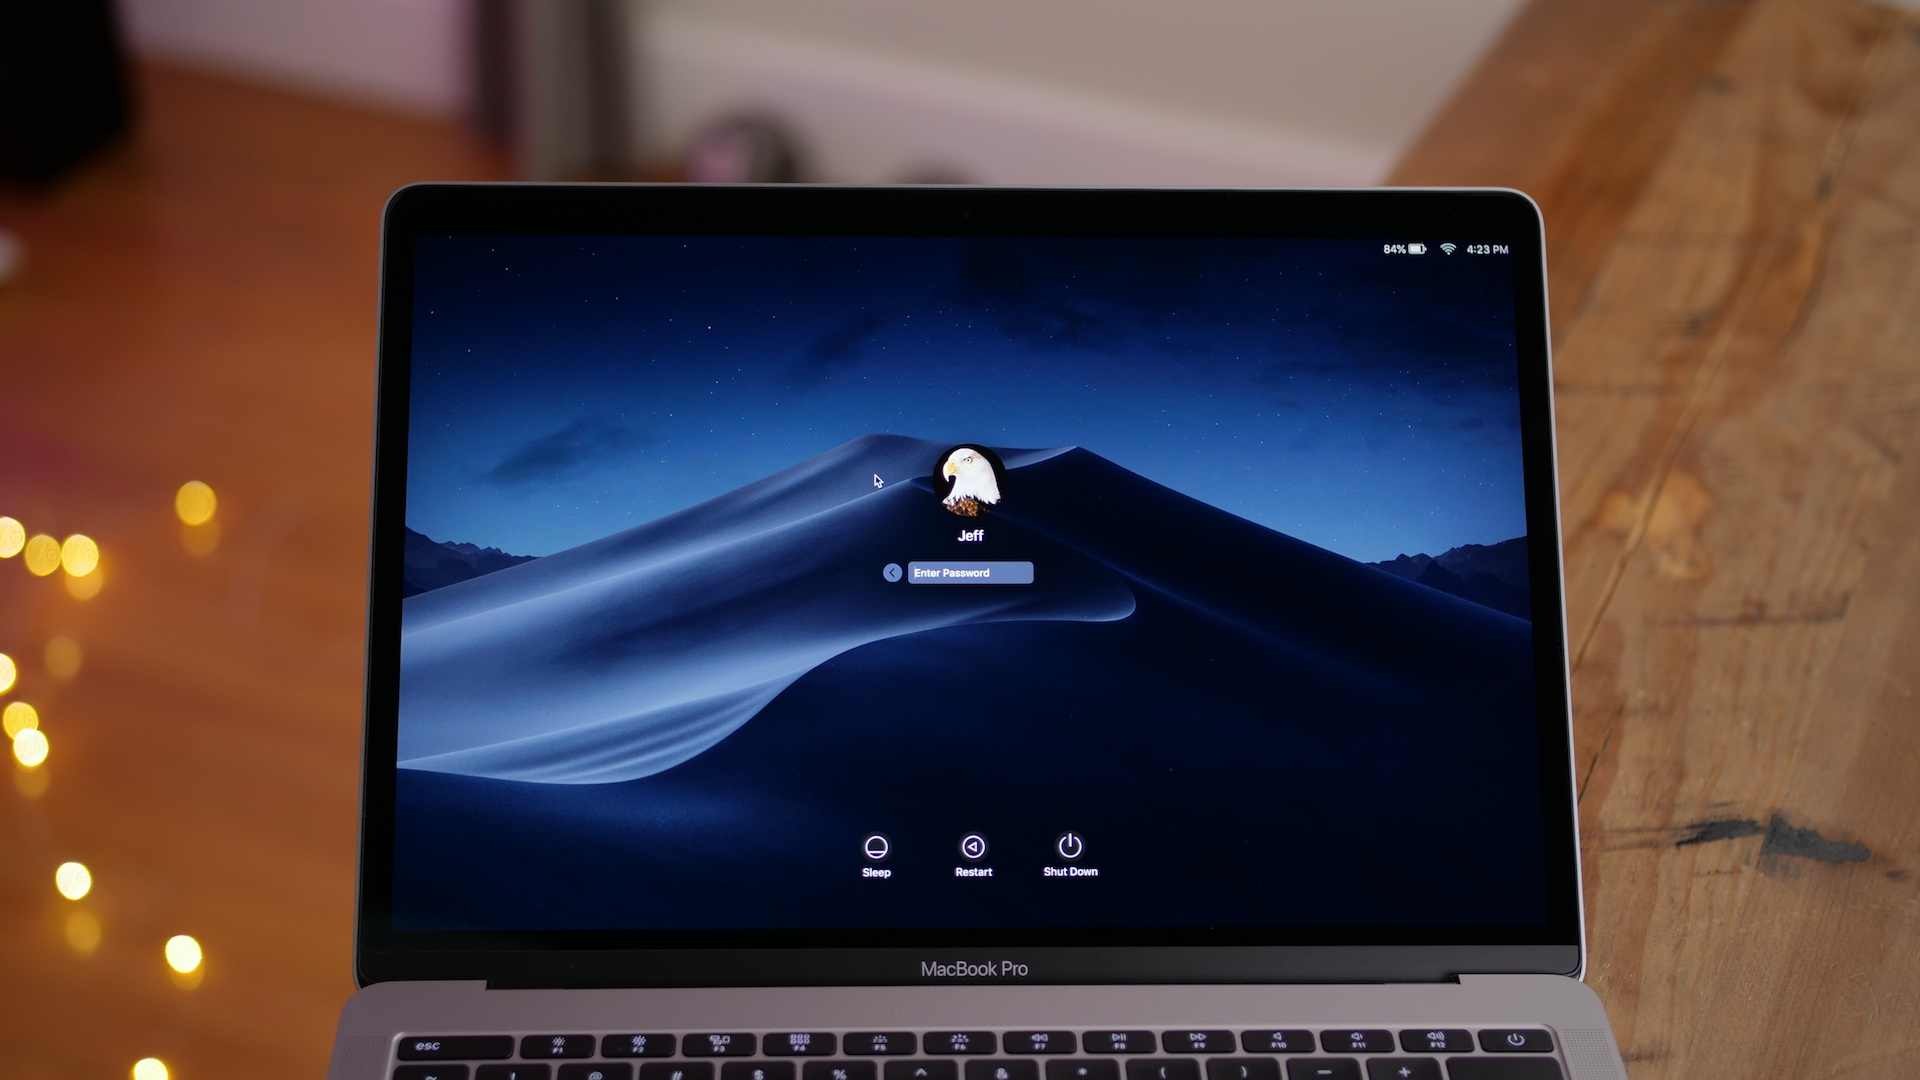 Macos Mojave Drops Back To My Mac Icloud Feature  Apple Remote Desktop Recommended